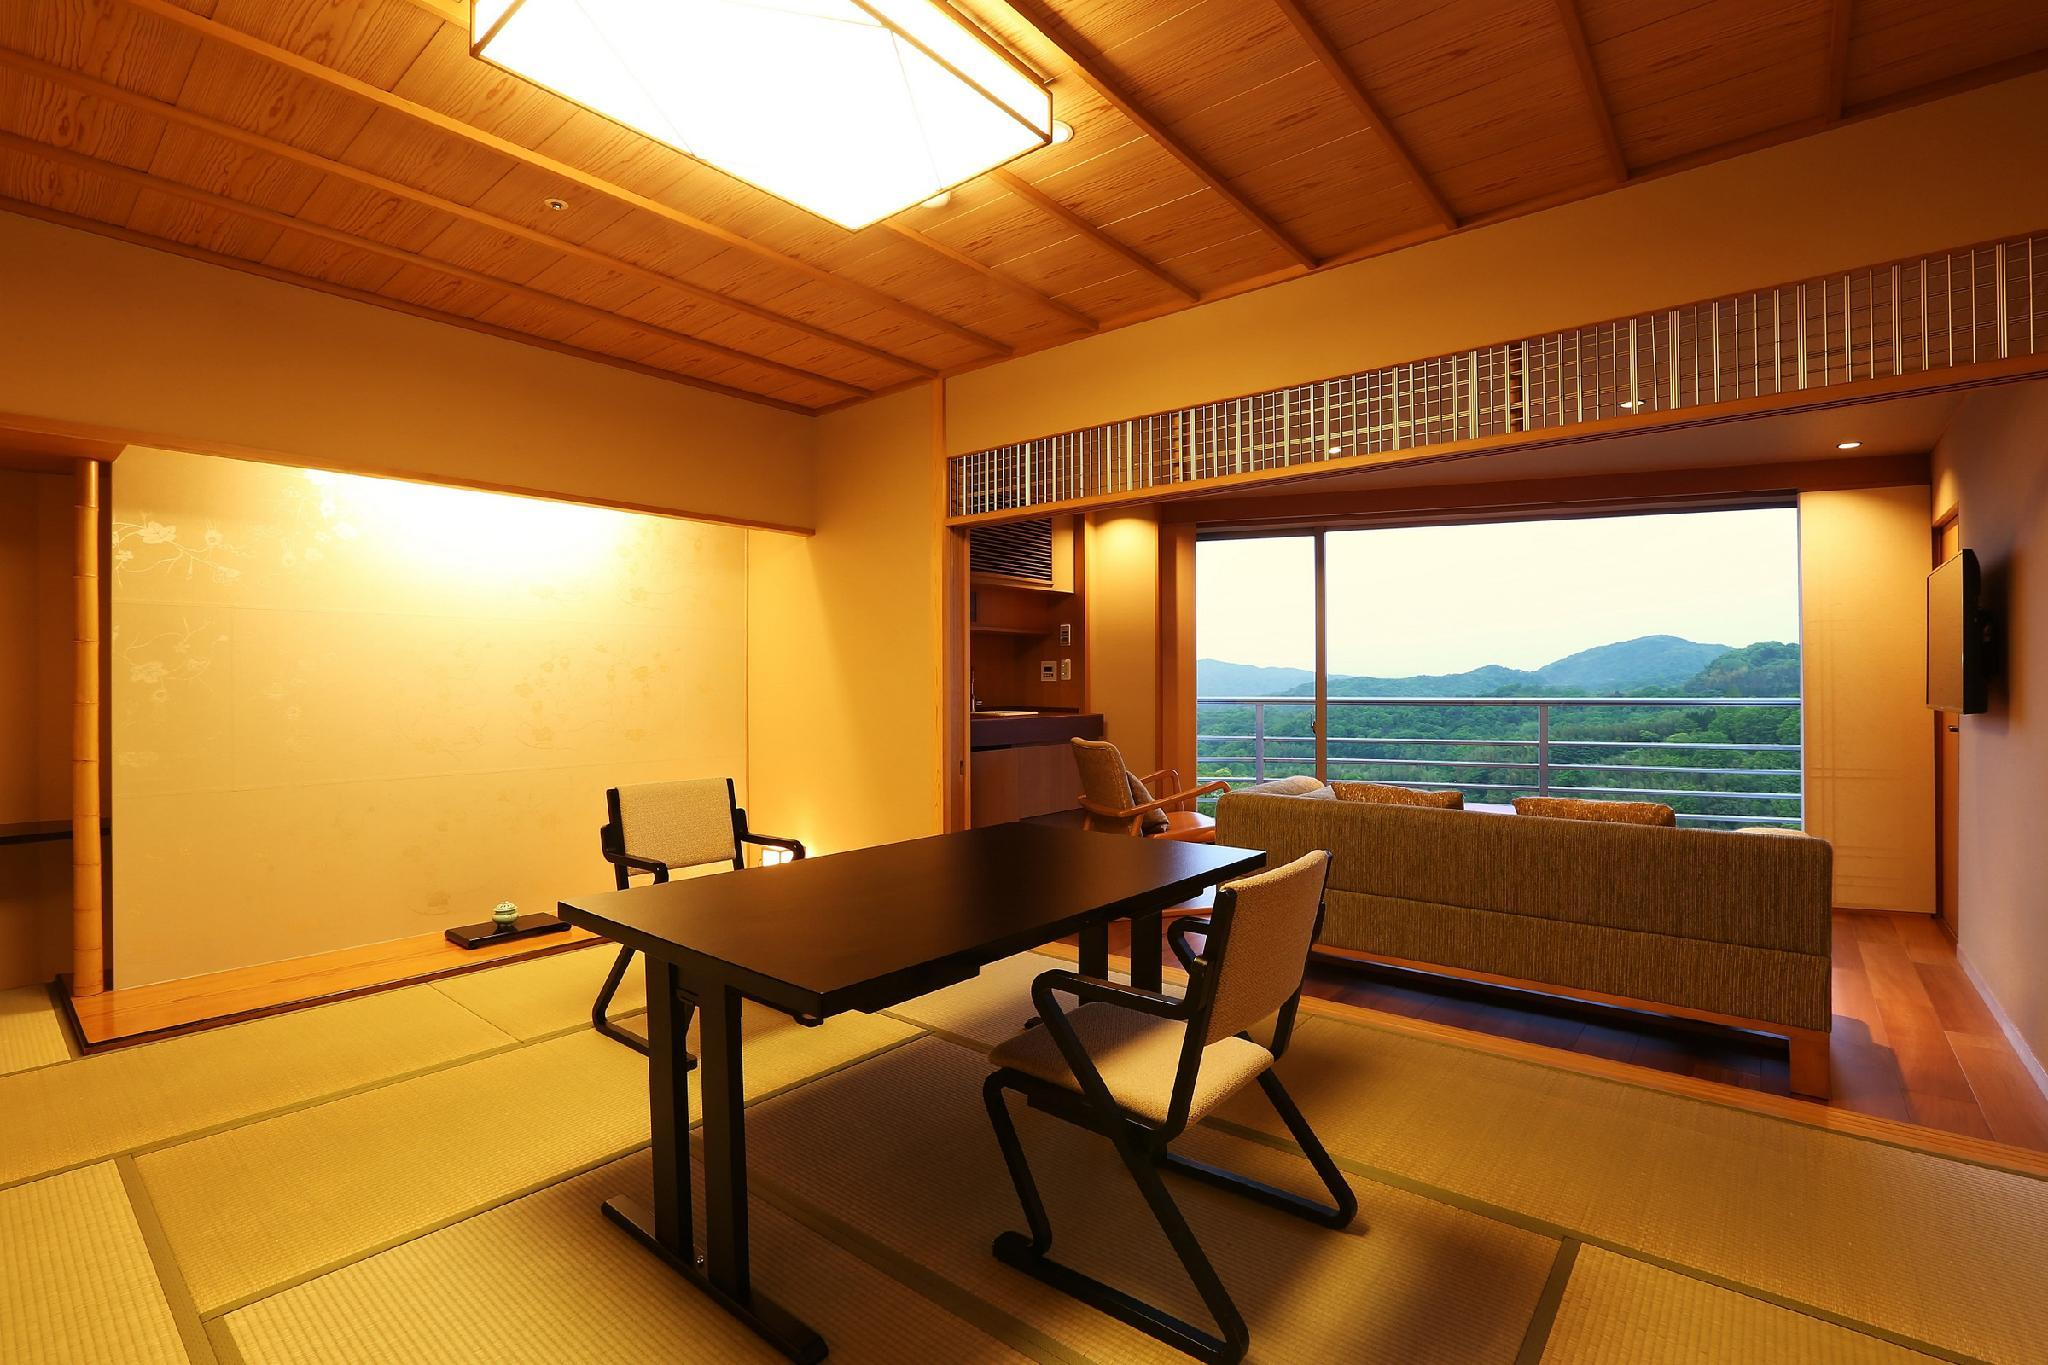 【全新裝修】和洋室客房 - 可住4人/包神戶牛晚餐 (Japanese Western Style Room for 4 People - Kobe Beef Dinner Included, Newly Renovated)